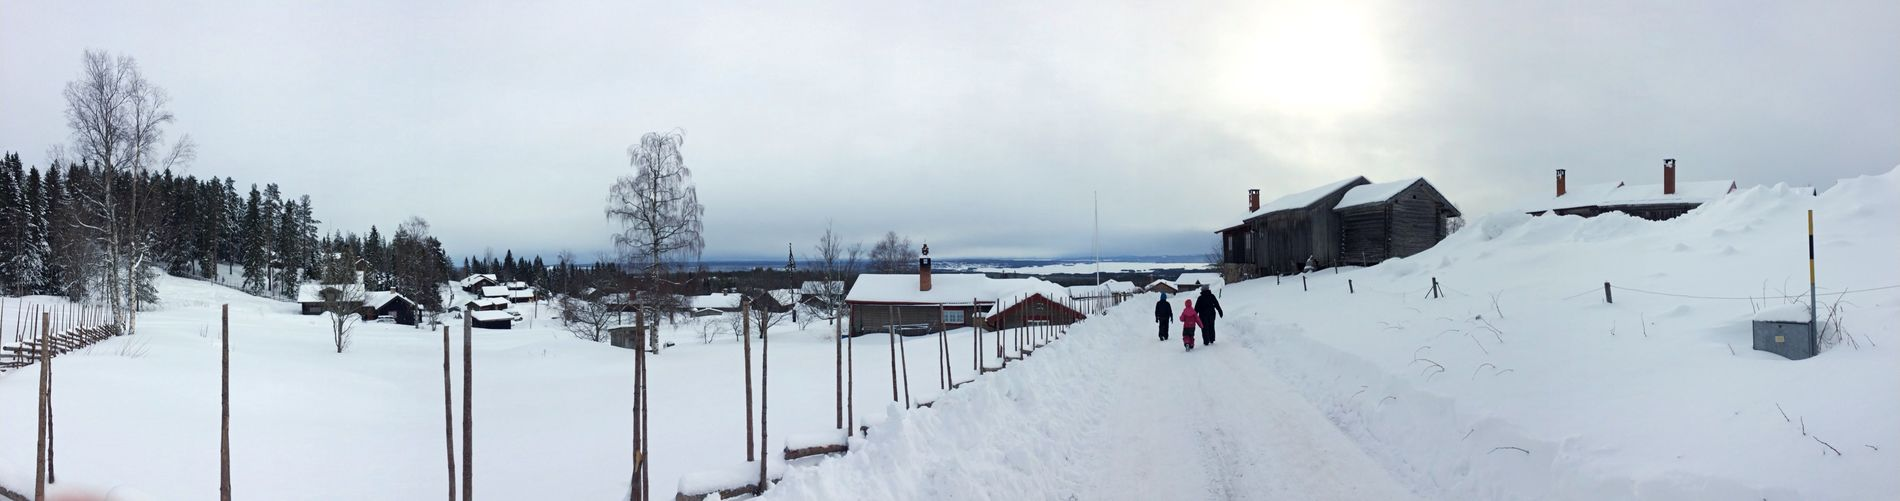 Panoramic view of snow covered field against sky